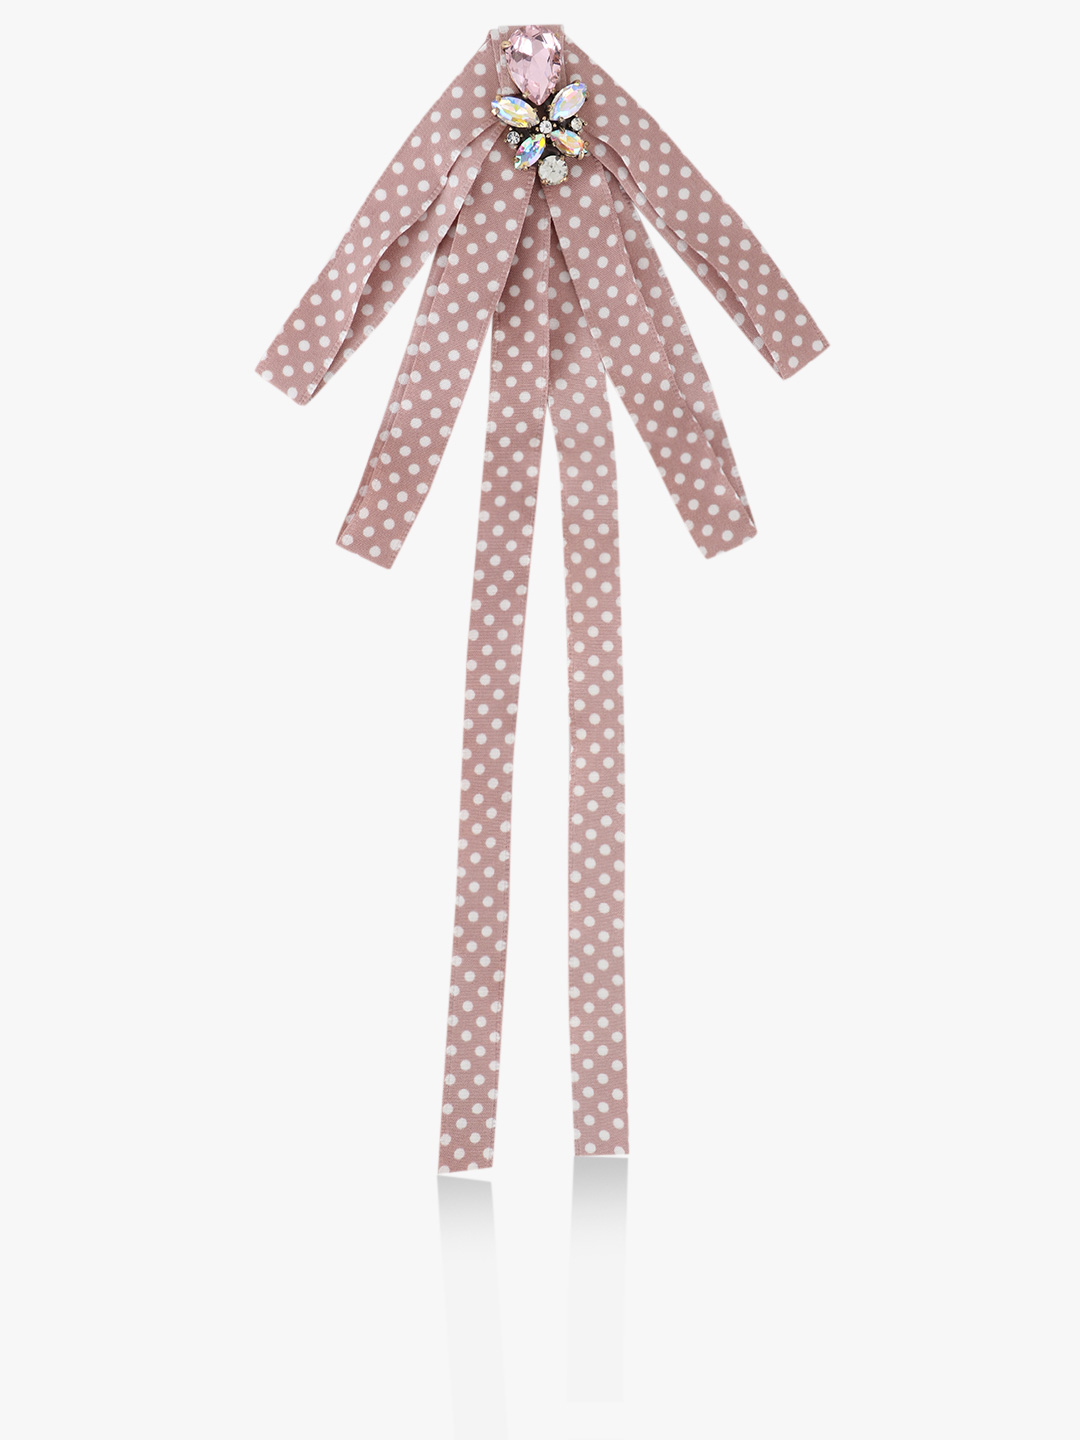 Style Fiesta Pink Polka Dot Embellished Bow Tie 1